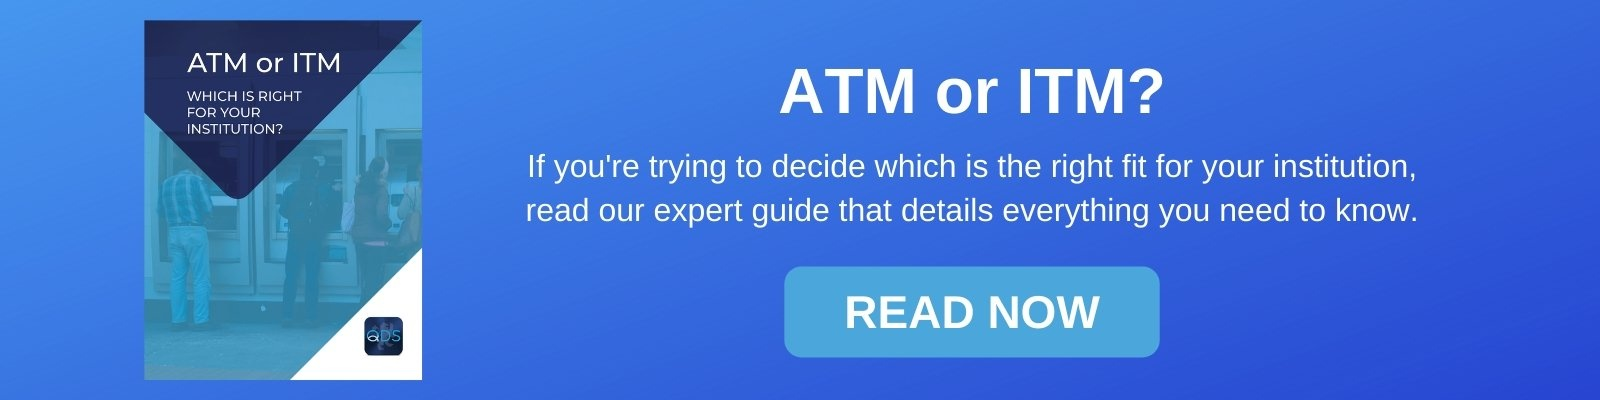 ATM or ITM, Which is right for you?